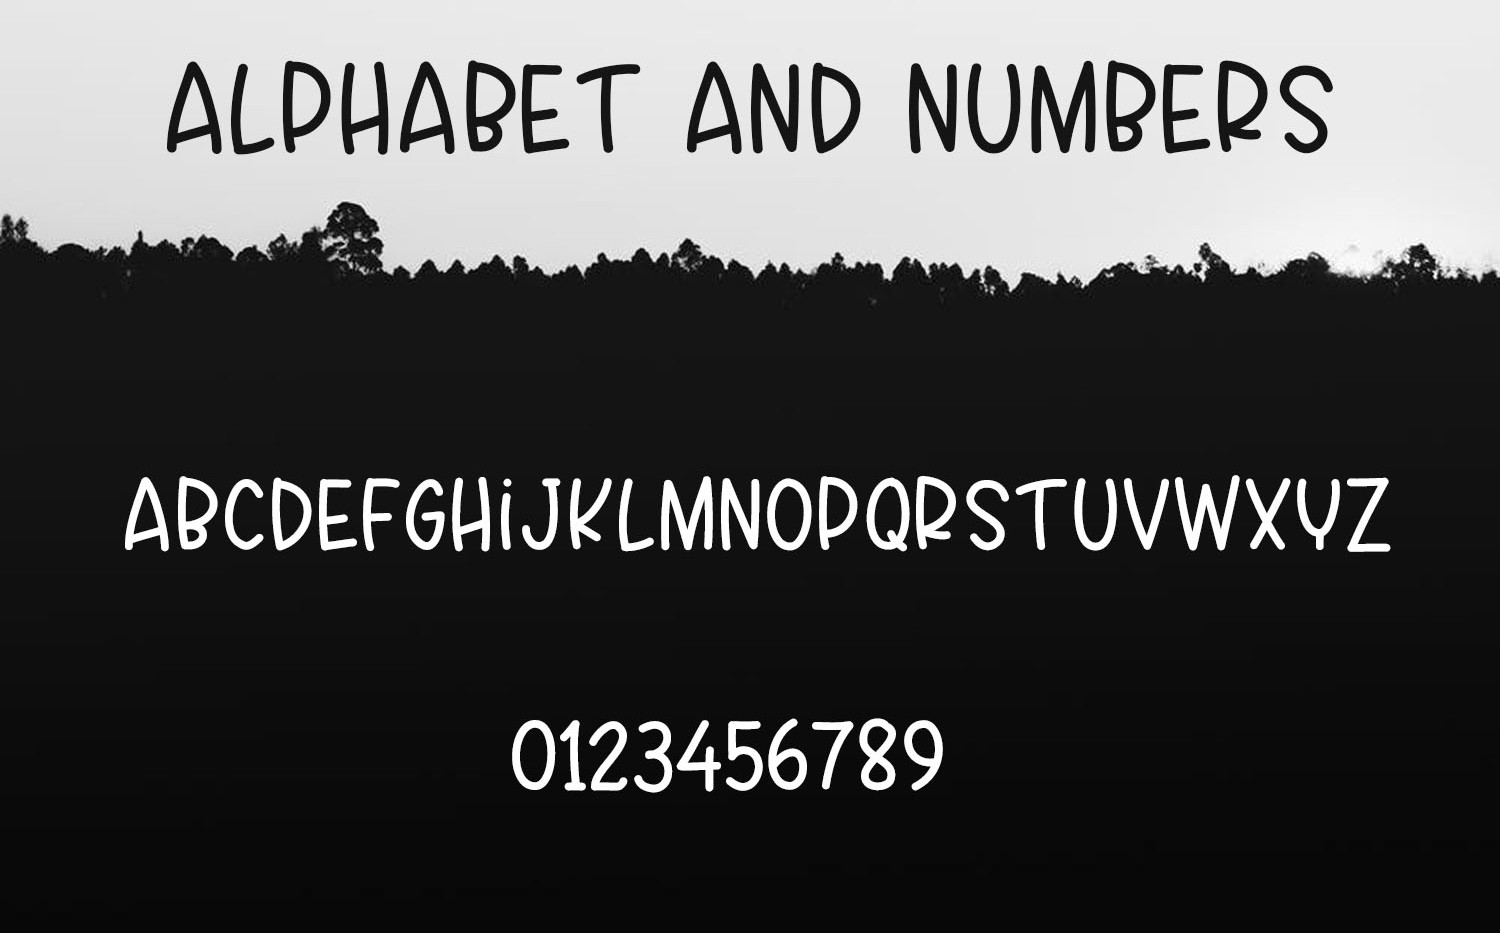 alphabet and numbers.jpg